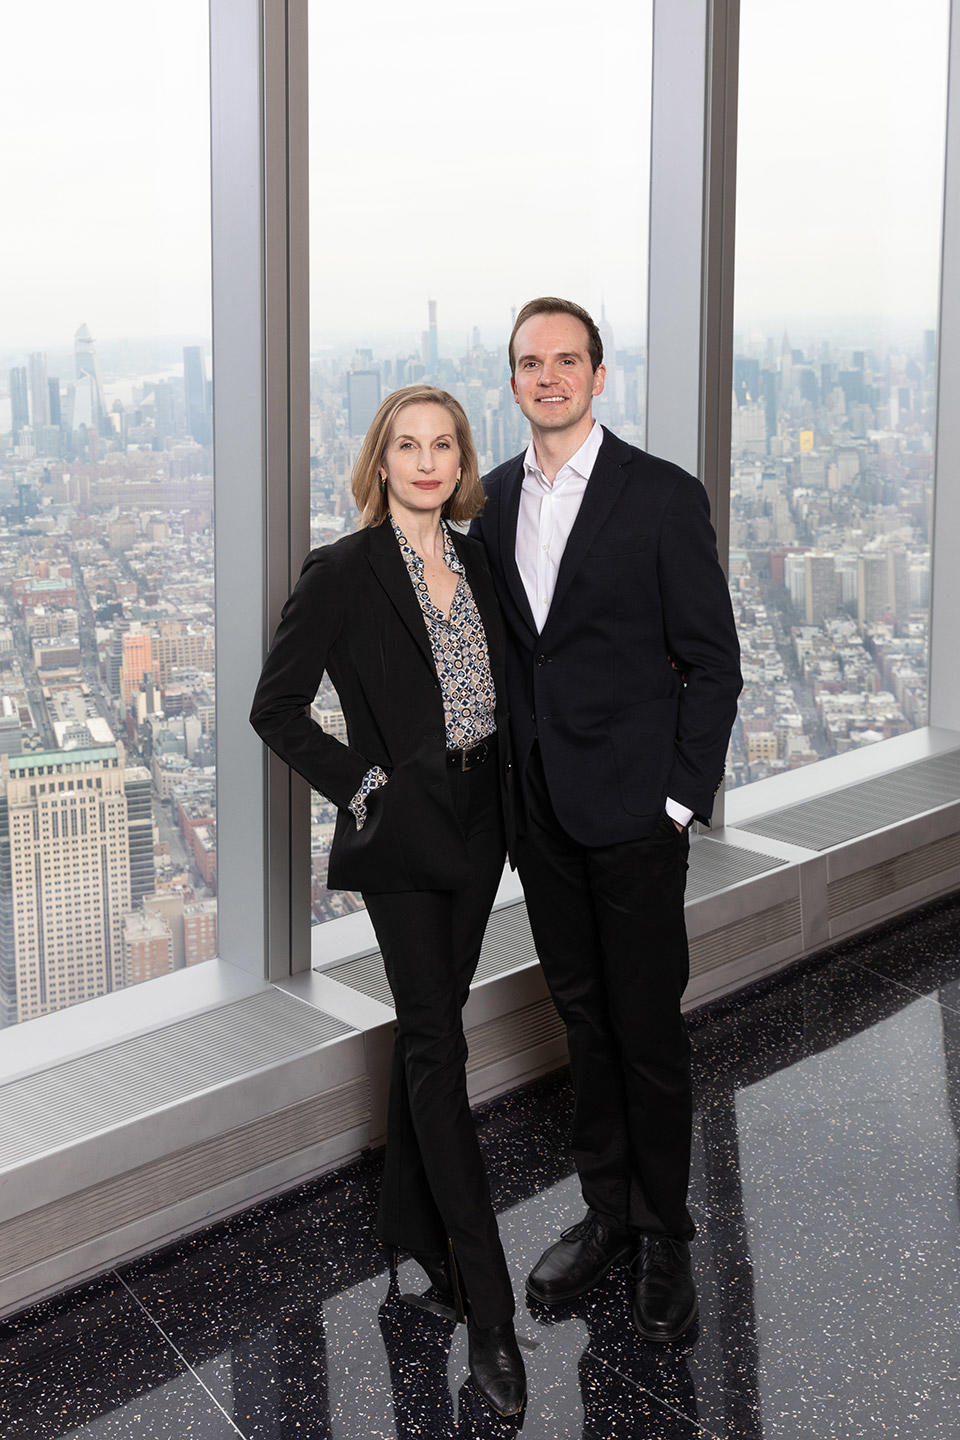 1_Wendy-Whelan-and-Jonathan-Stafford-at-One-World-Observatory-in-New-York-City.-Photo-credit-Christopher-Lane.jpg